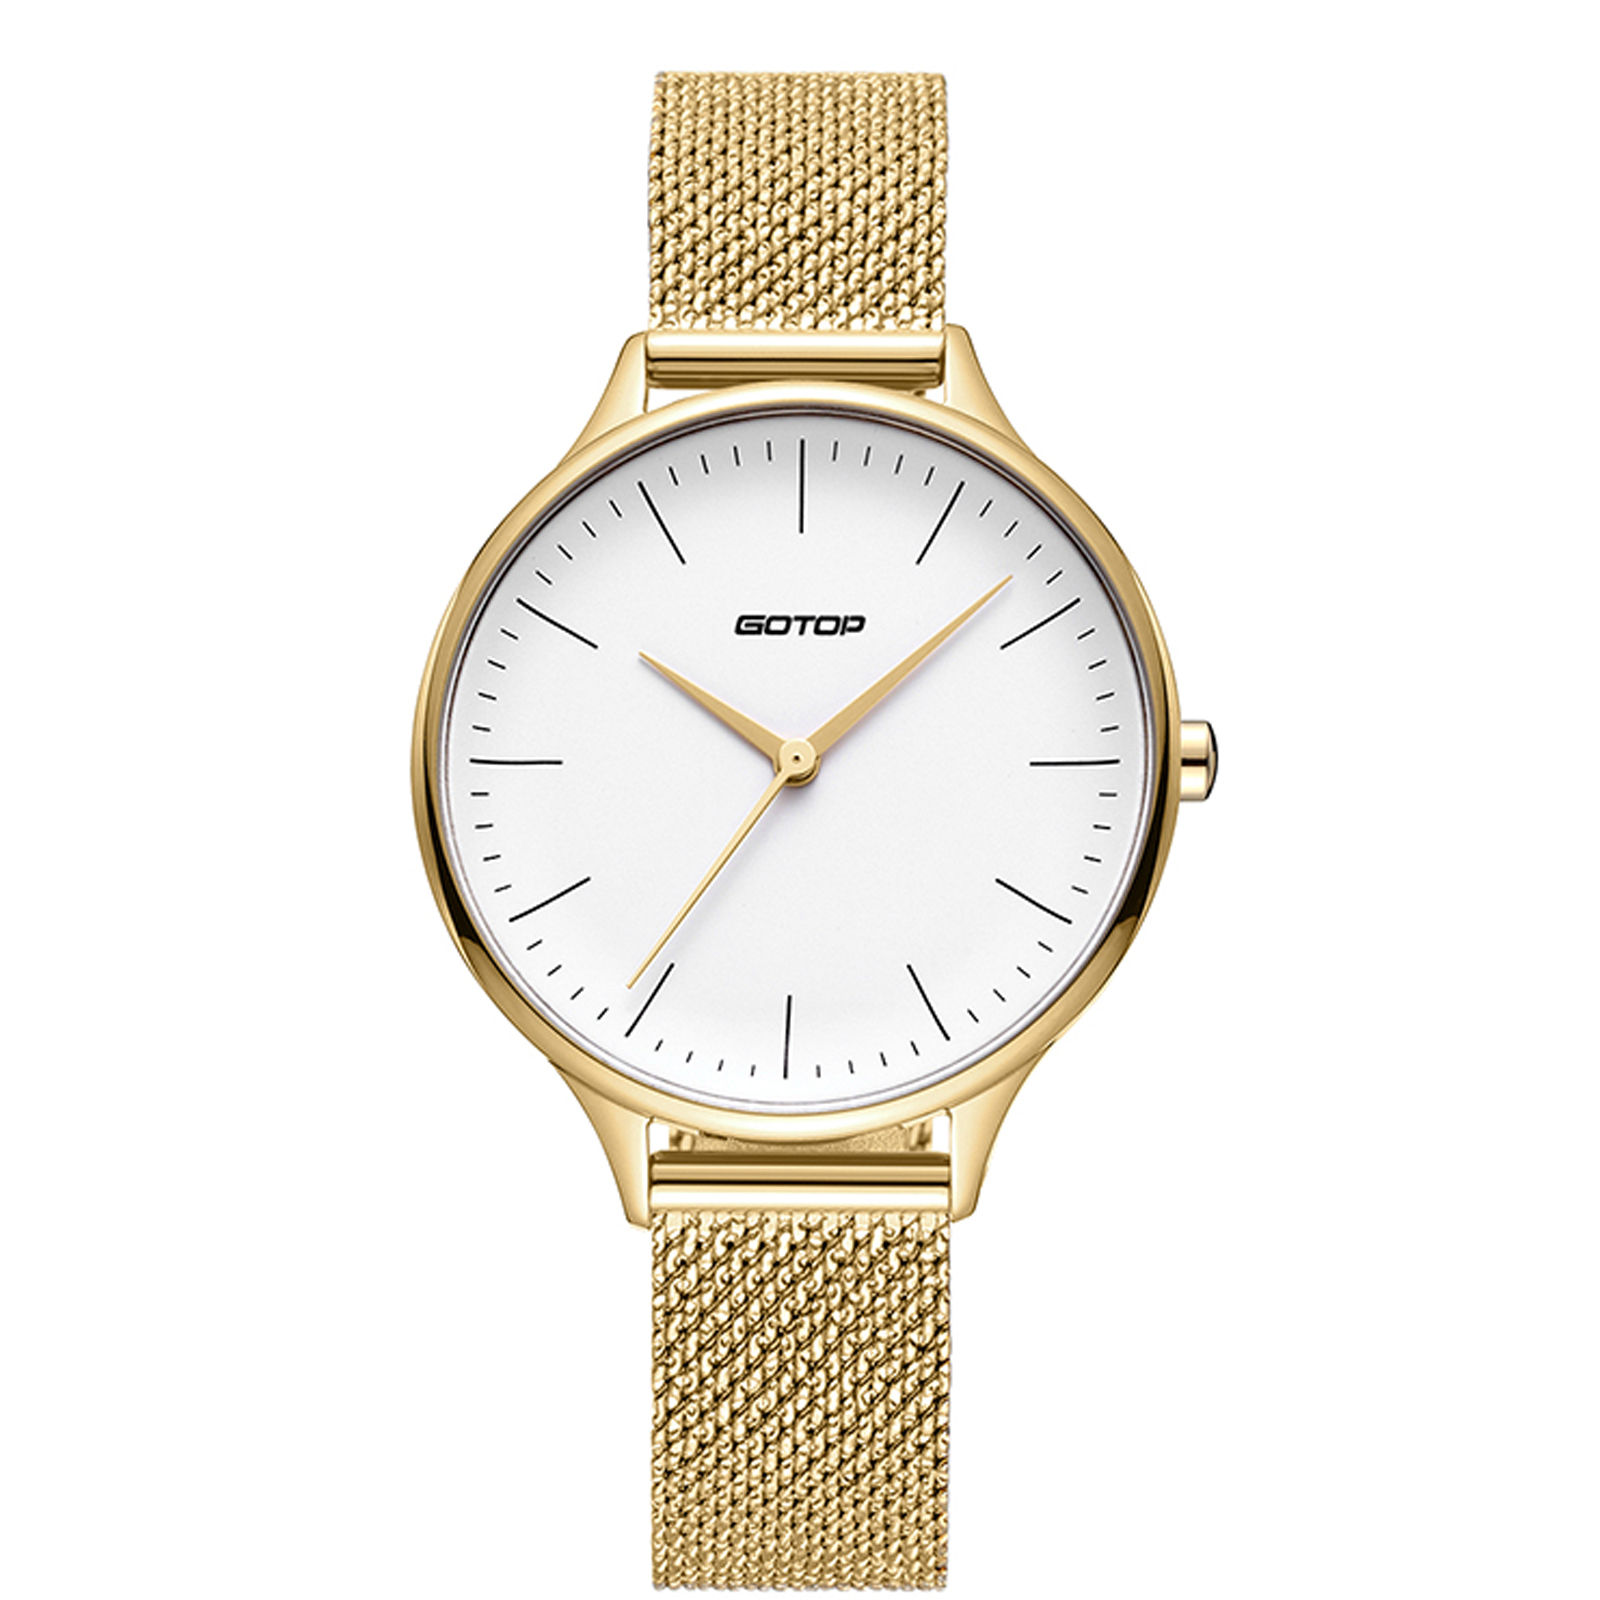 Gold And White Women's Watch With Mesh Band